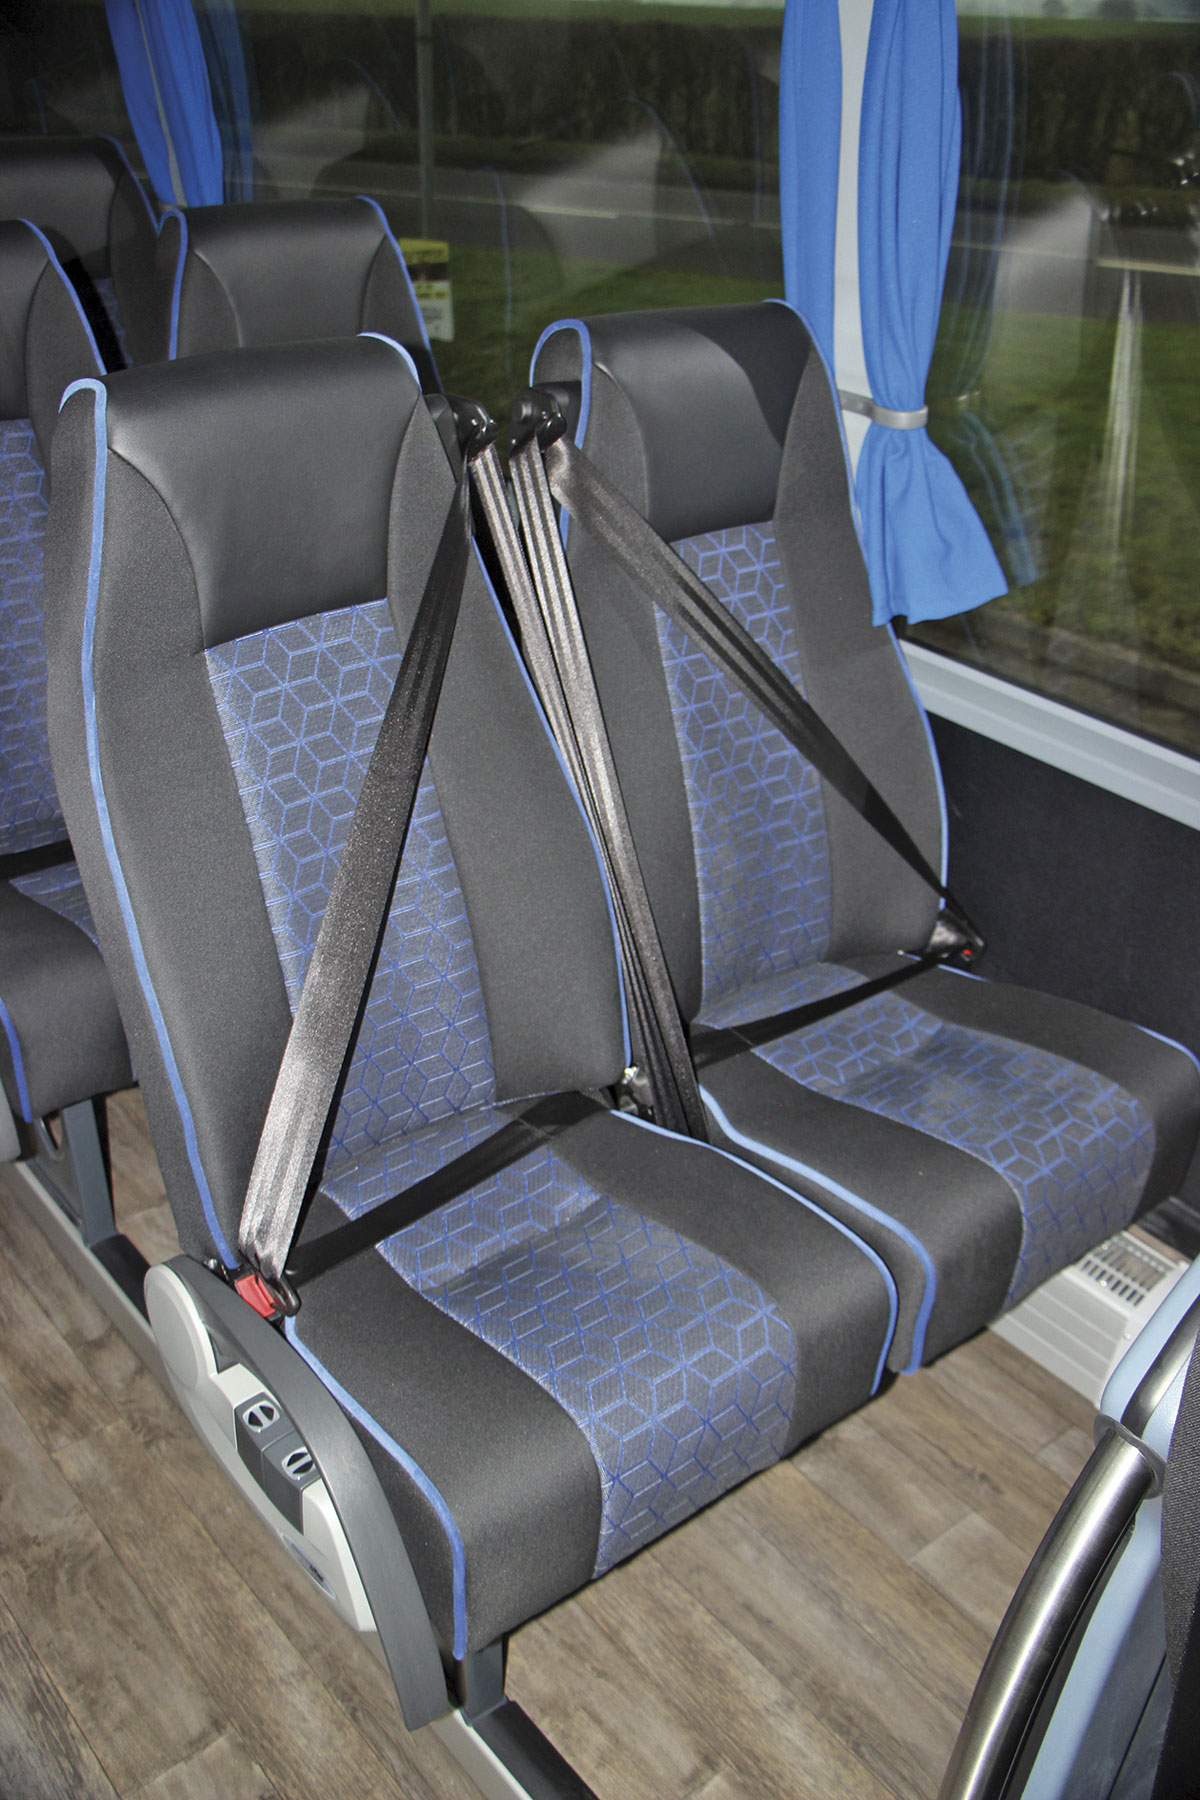 Vogel produce the Eco10 seats. Only the front and centre rear units have three-point belts